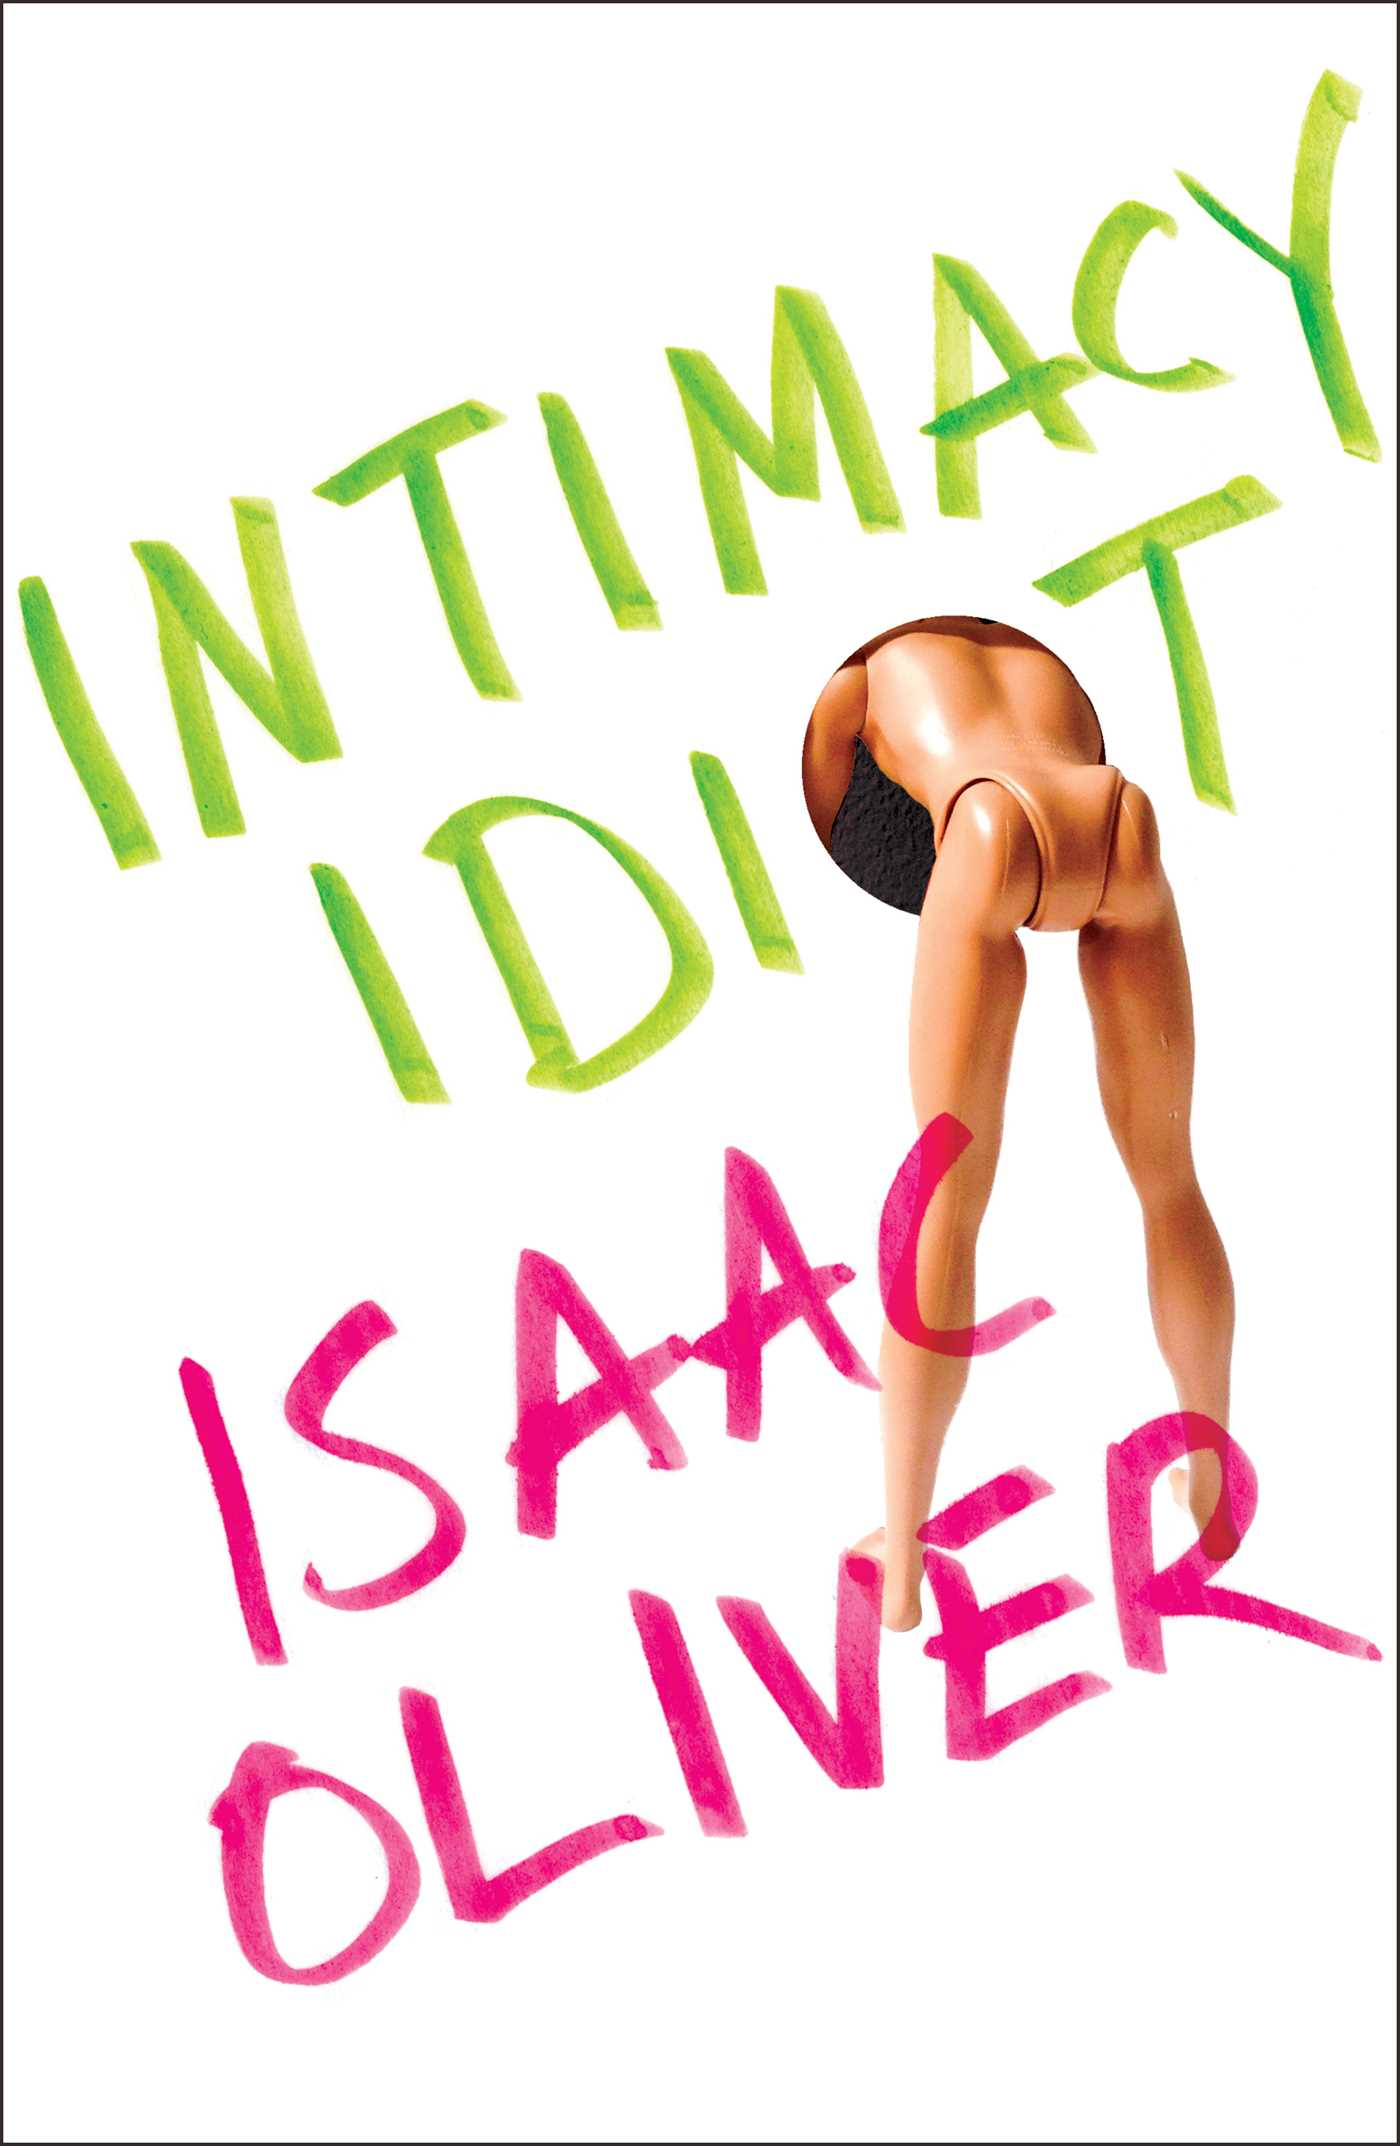 'Intimacy Idiot' by Isaac Oliver